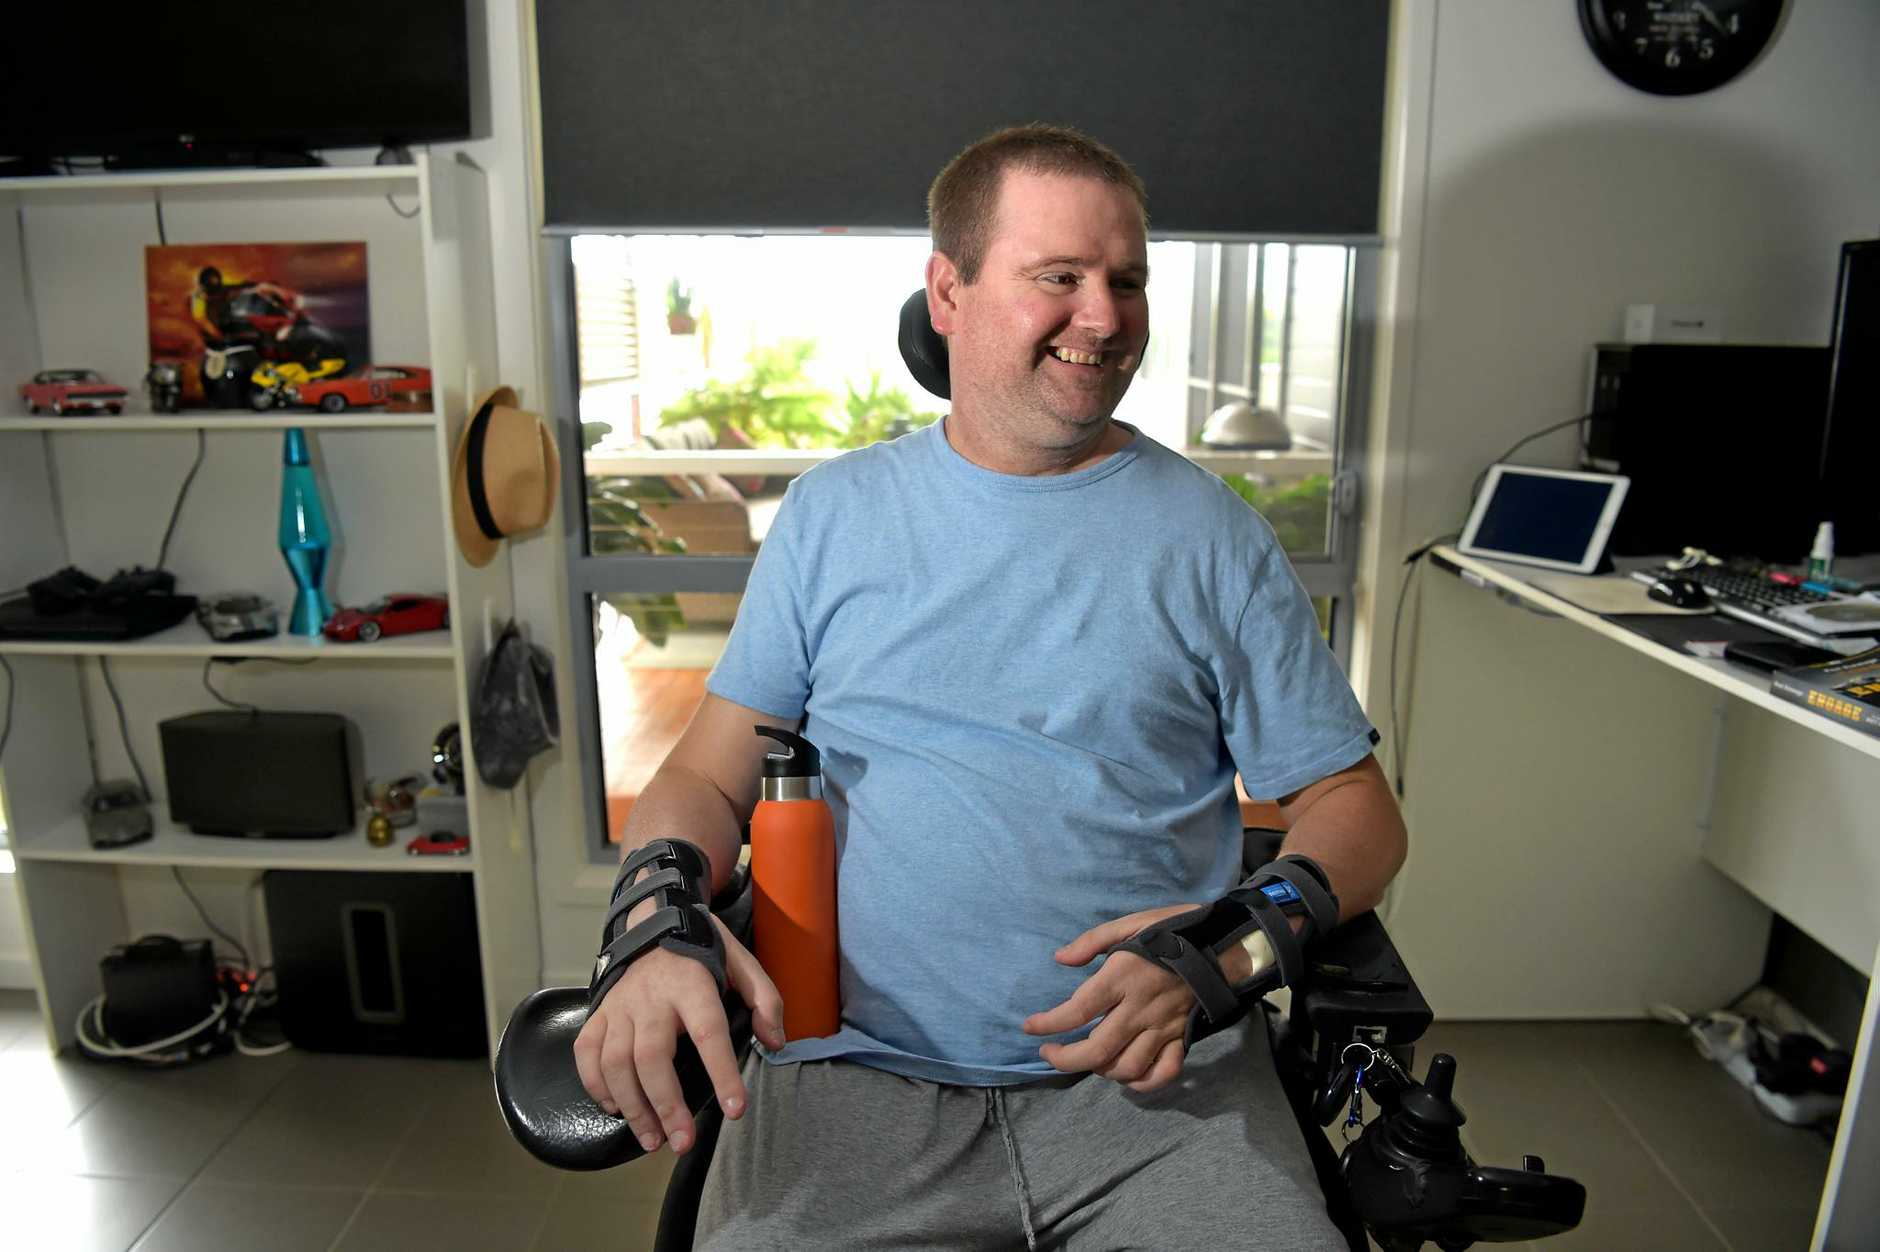 HAPPIER times for Jarrad Quinn who is regaining movement in his body through exercise after being left a quadriplegic by a dirt bike accident. He is raising money for a standing wheelchair.